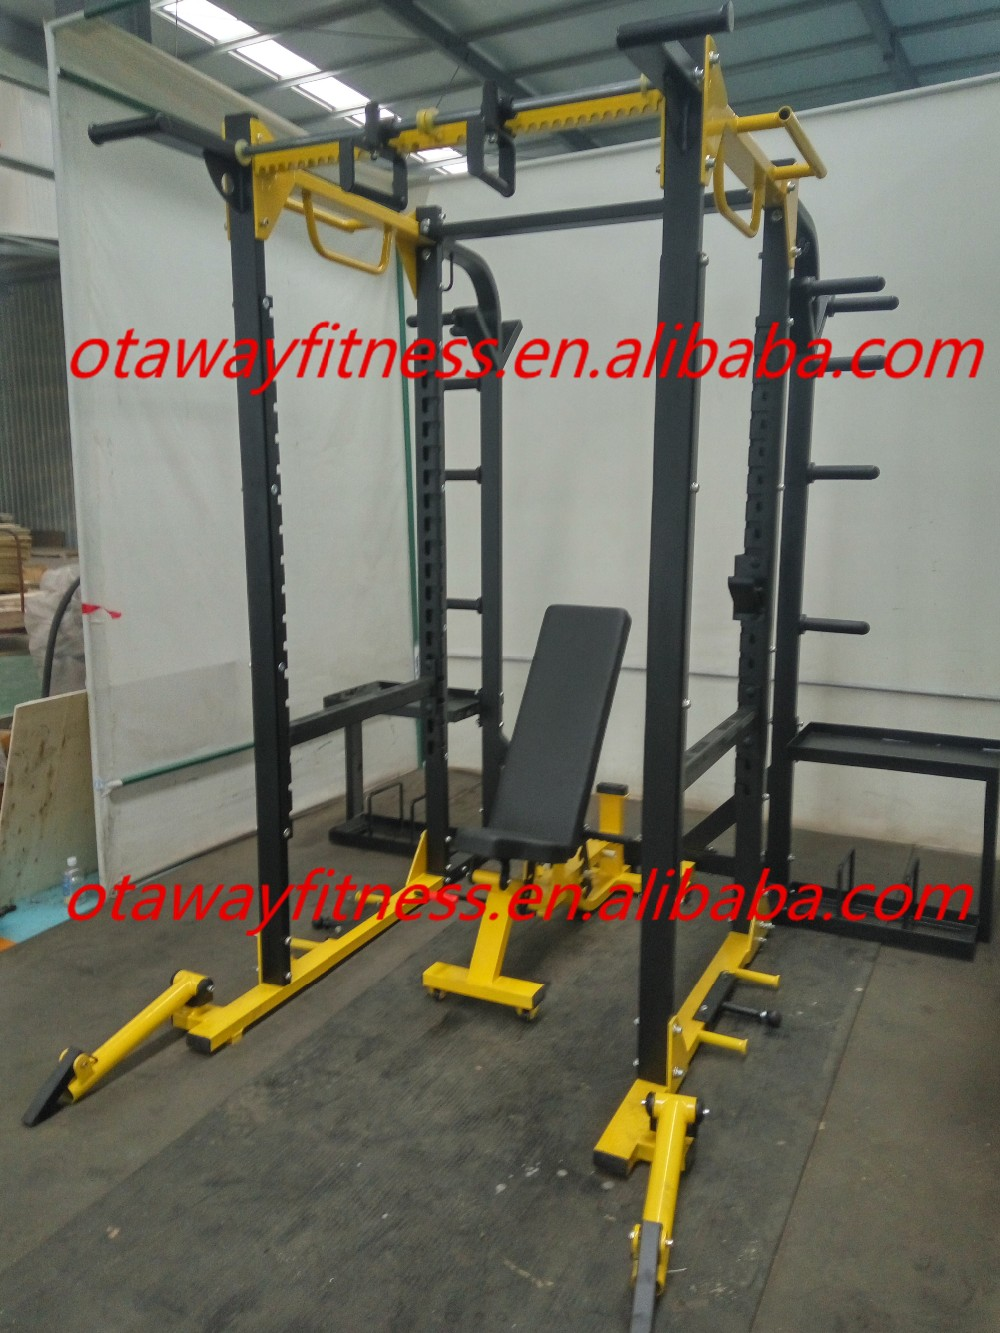 commercial hammer strength hd elite gym power rack half rack fw1 2006 buy hammer strength. Black Bedroom Furniture Sets. Home Design Ideas